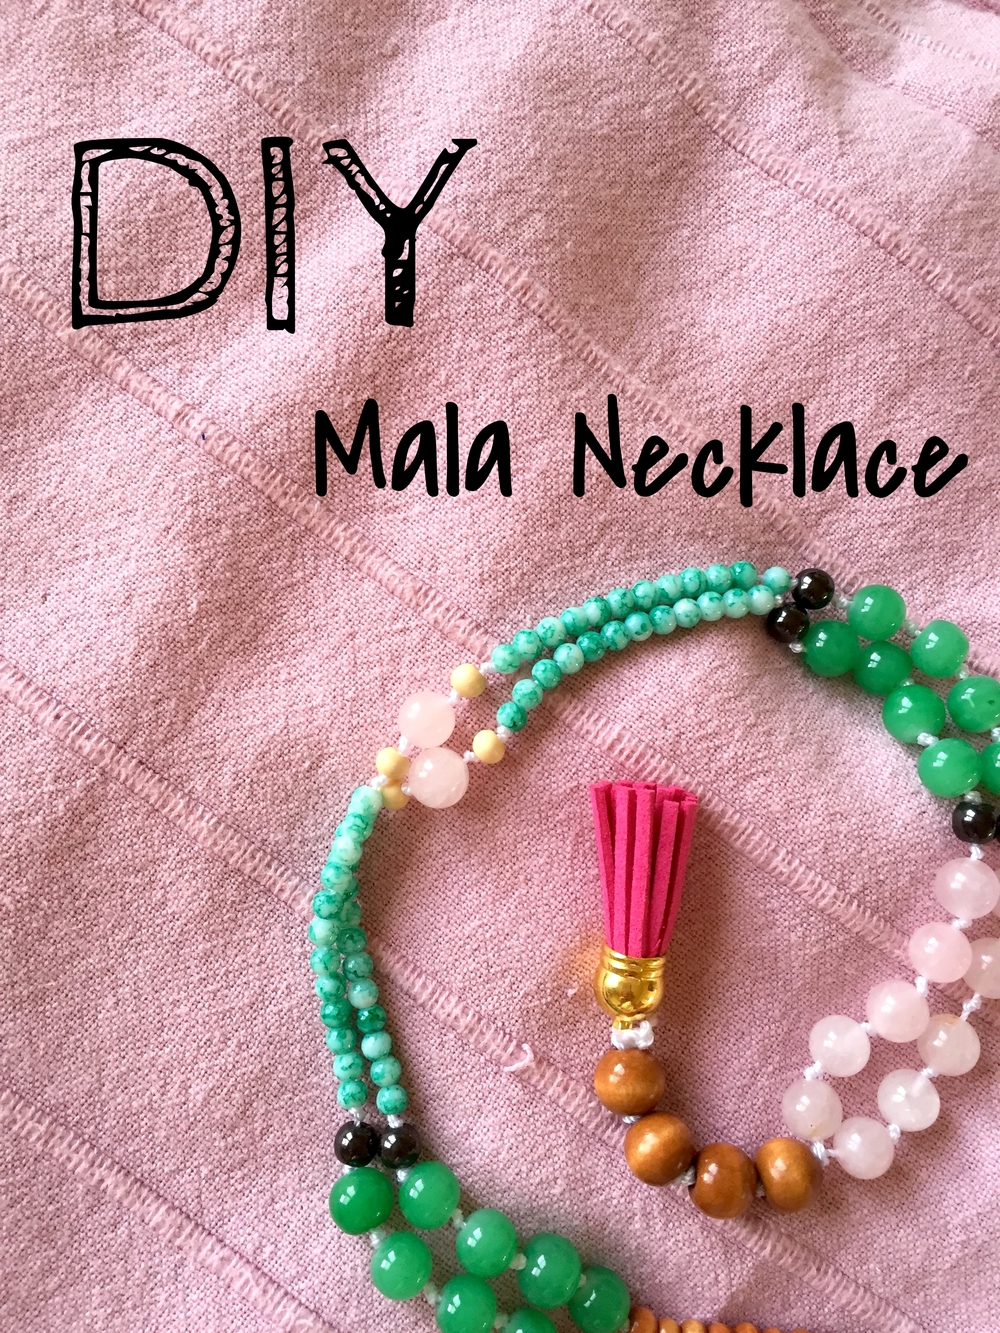 pin now, DIY later - Mala bead necklace